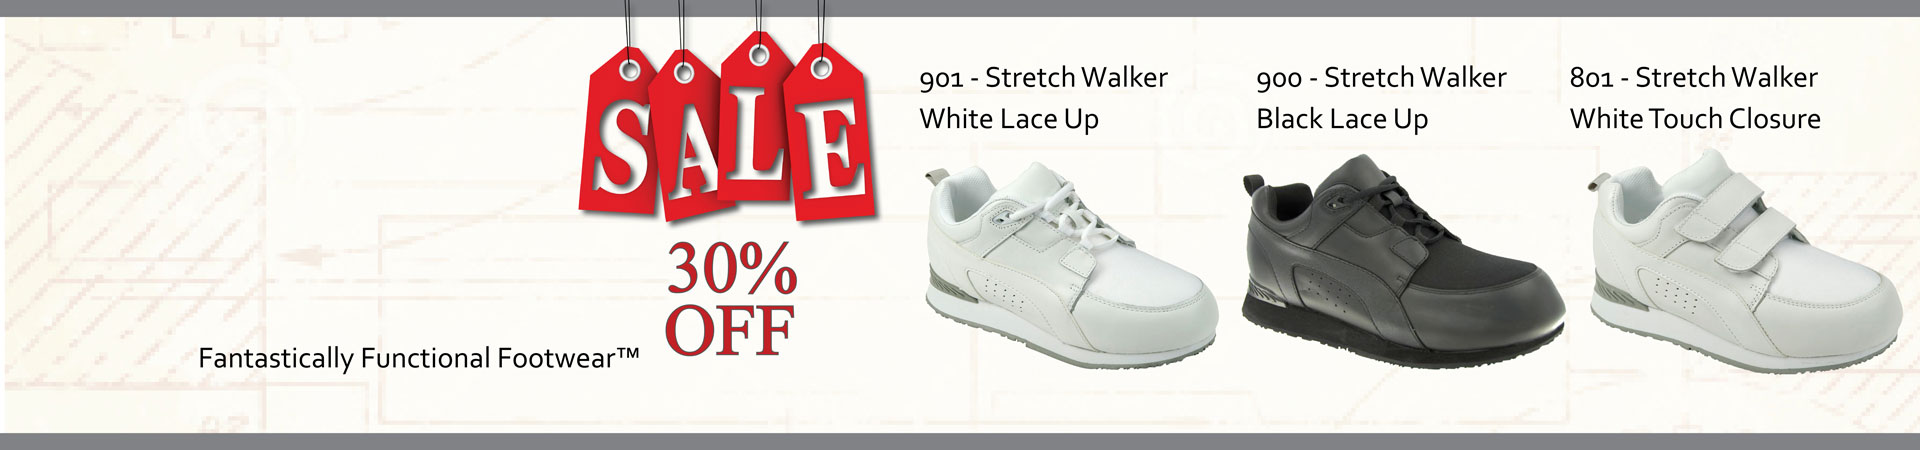 Pedors Stretch Walker Sale